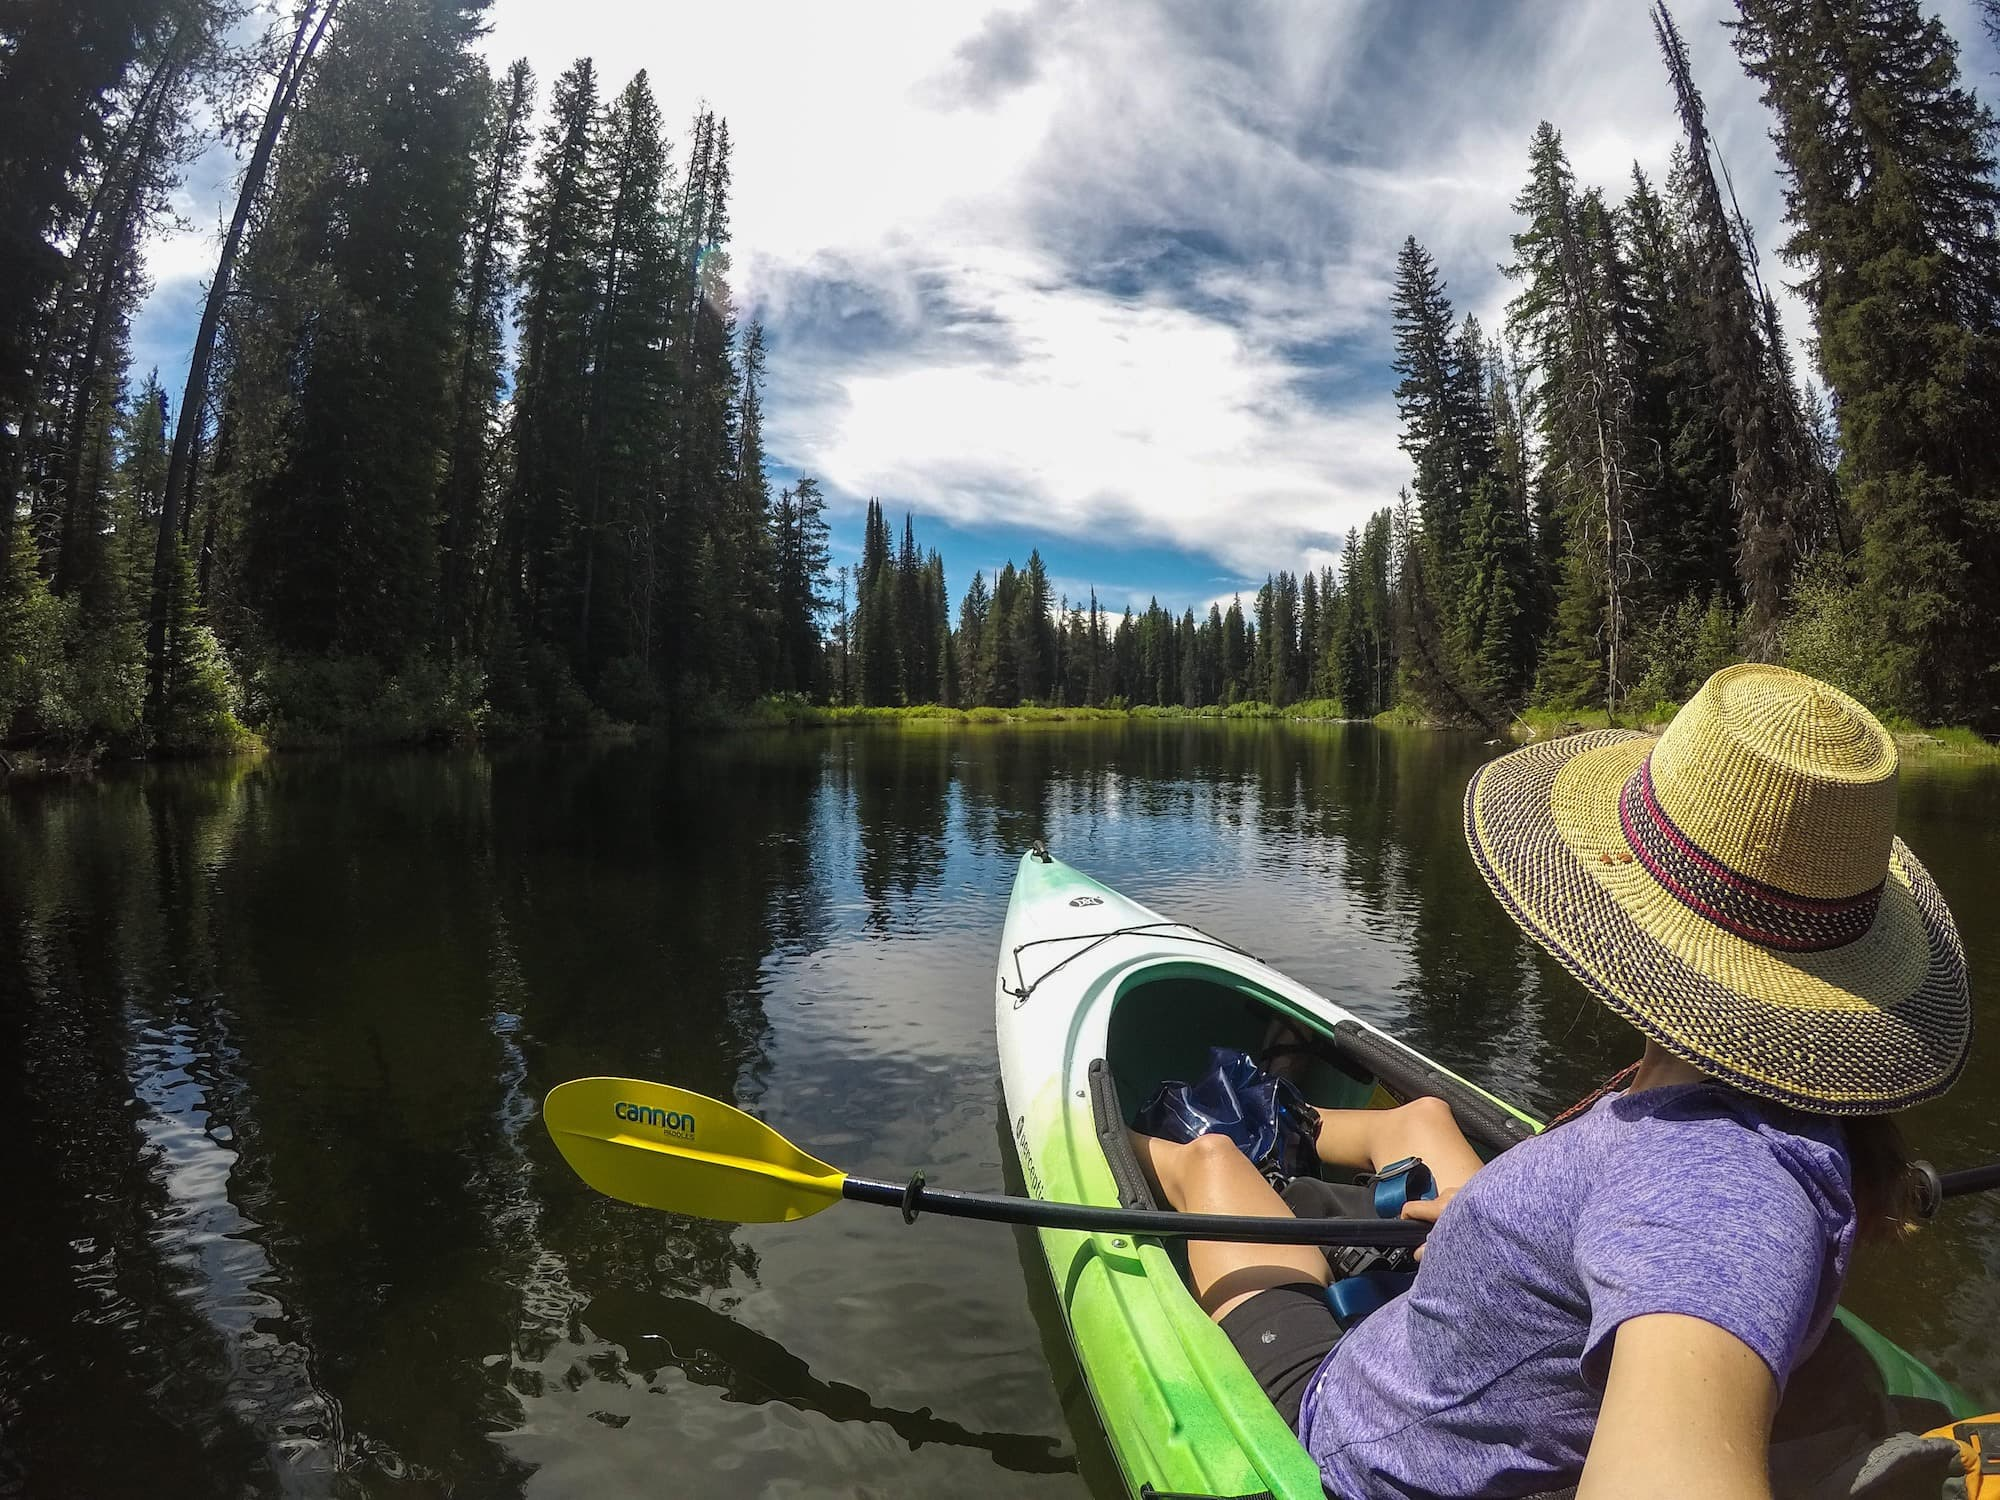 McCall, Idaho is one of my favorite mountain towns. Learn what to do, places to eat, and where to stay/camp in our new adventure travel guide.